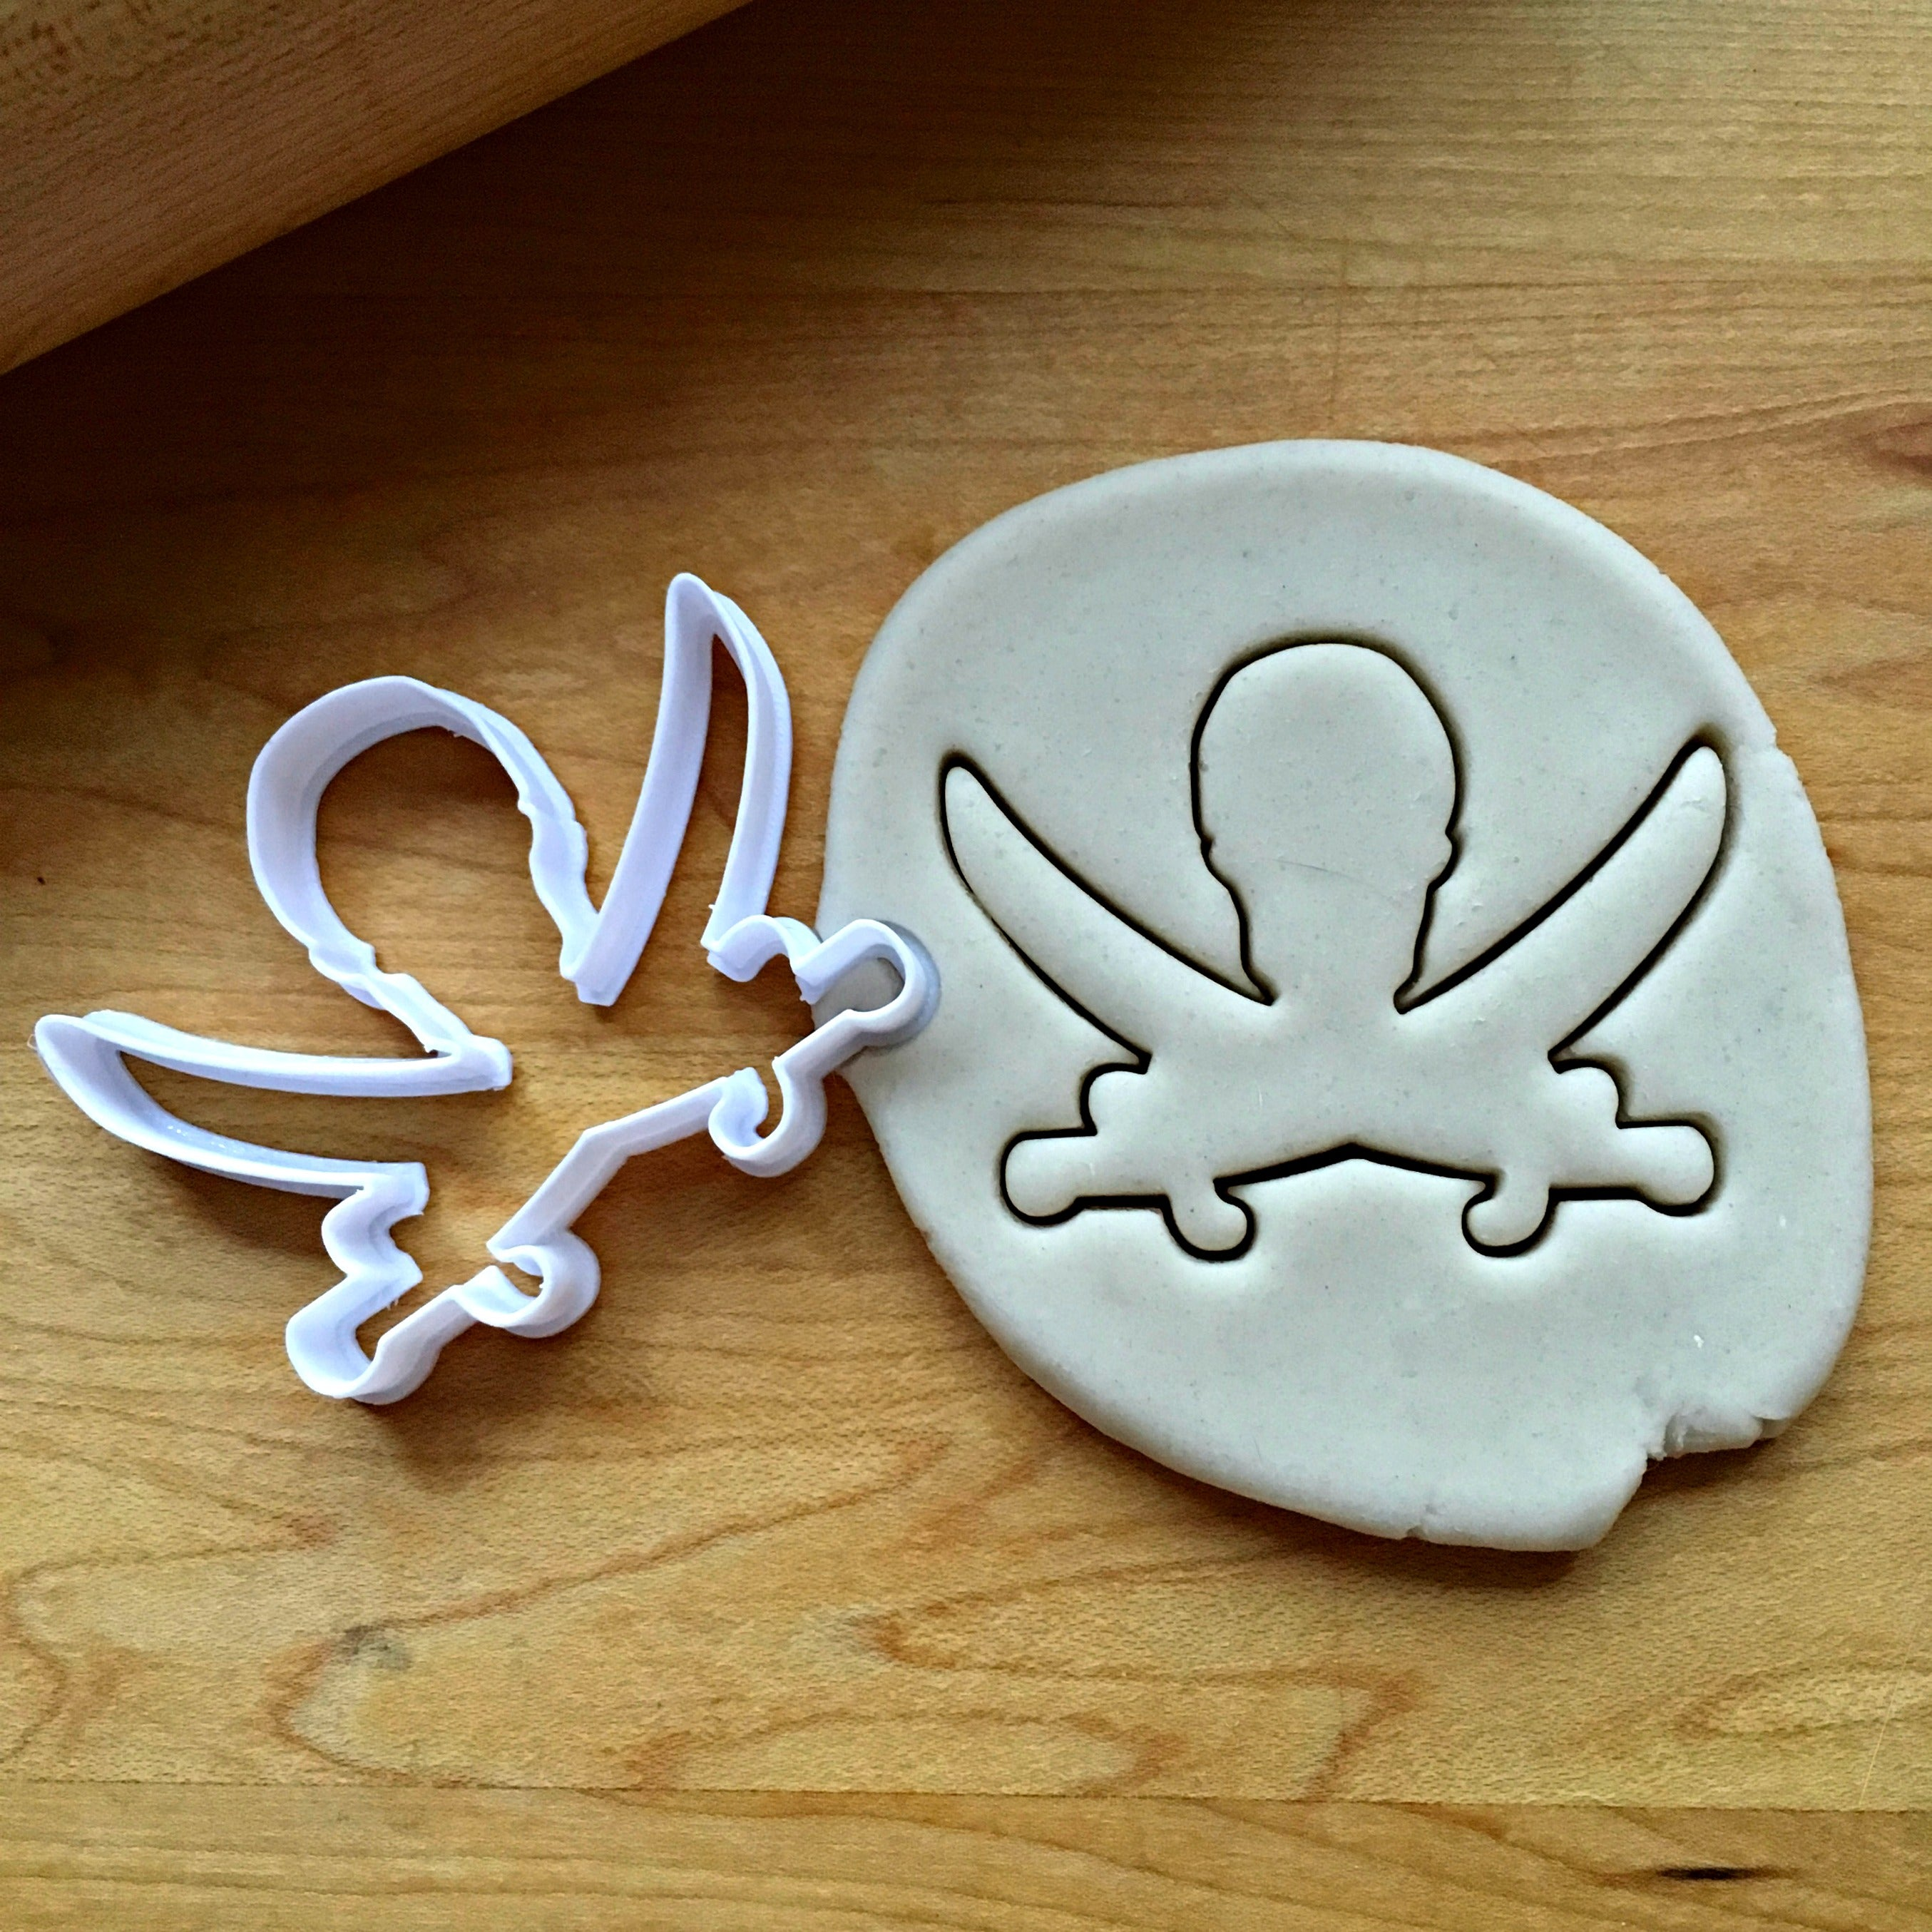 Jolly Roger Cookie Cutter/Dishwasher Safe